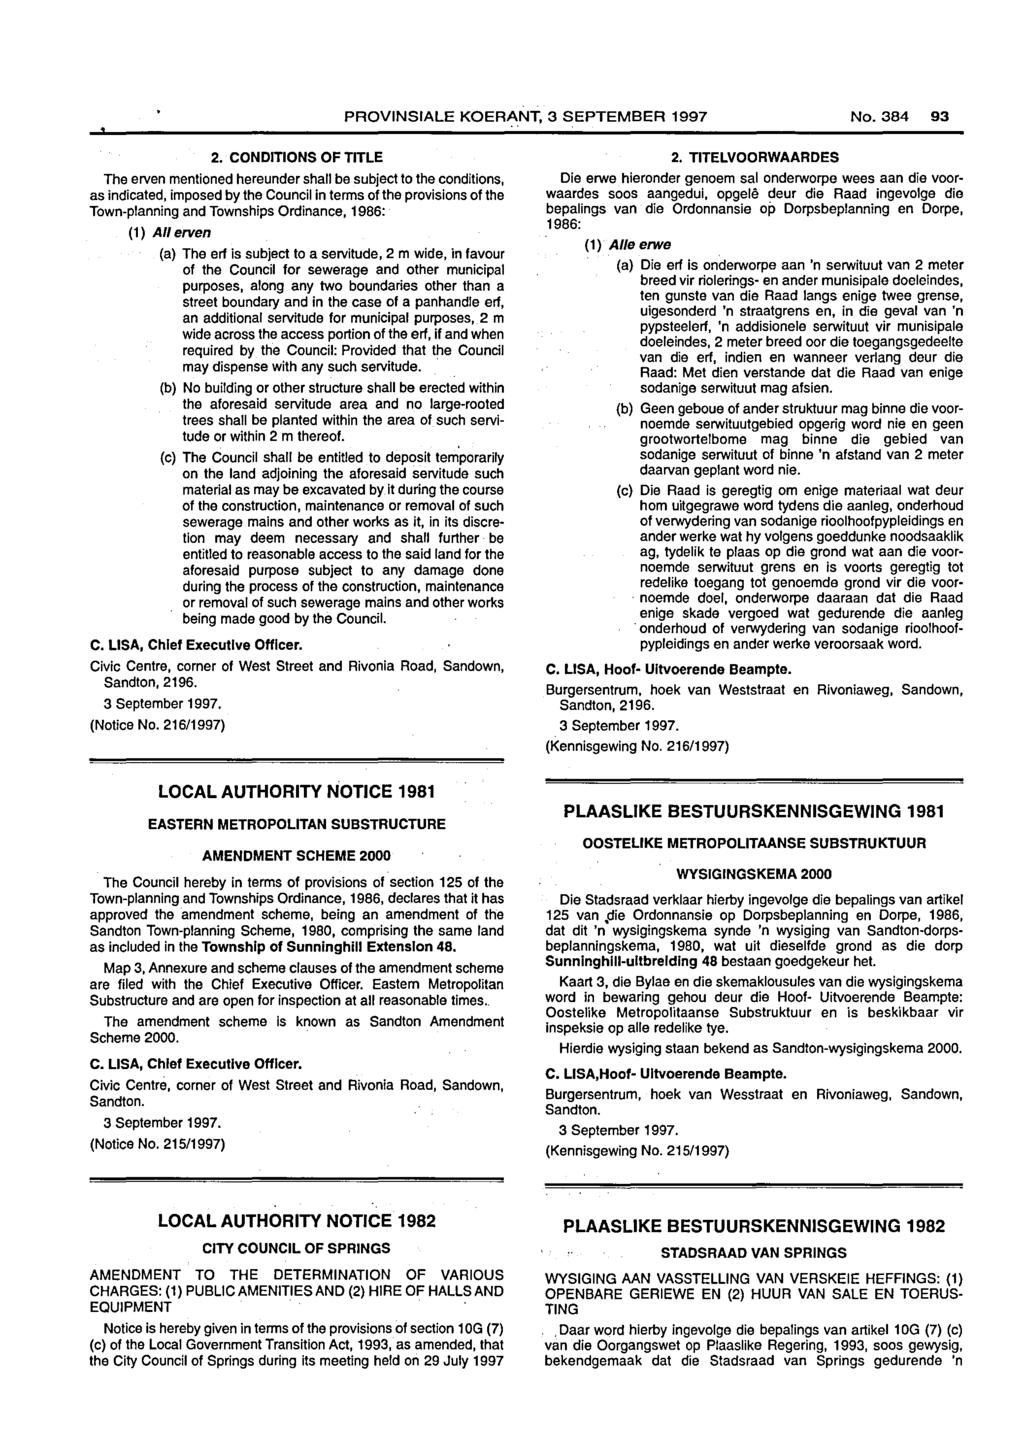 PROVINSIALE KOERANT, 3 SEPTEMBER 1997 No. 93 2.